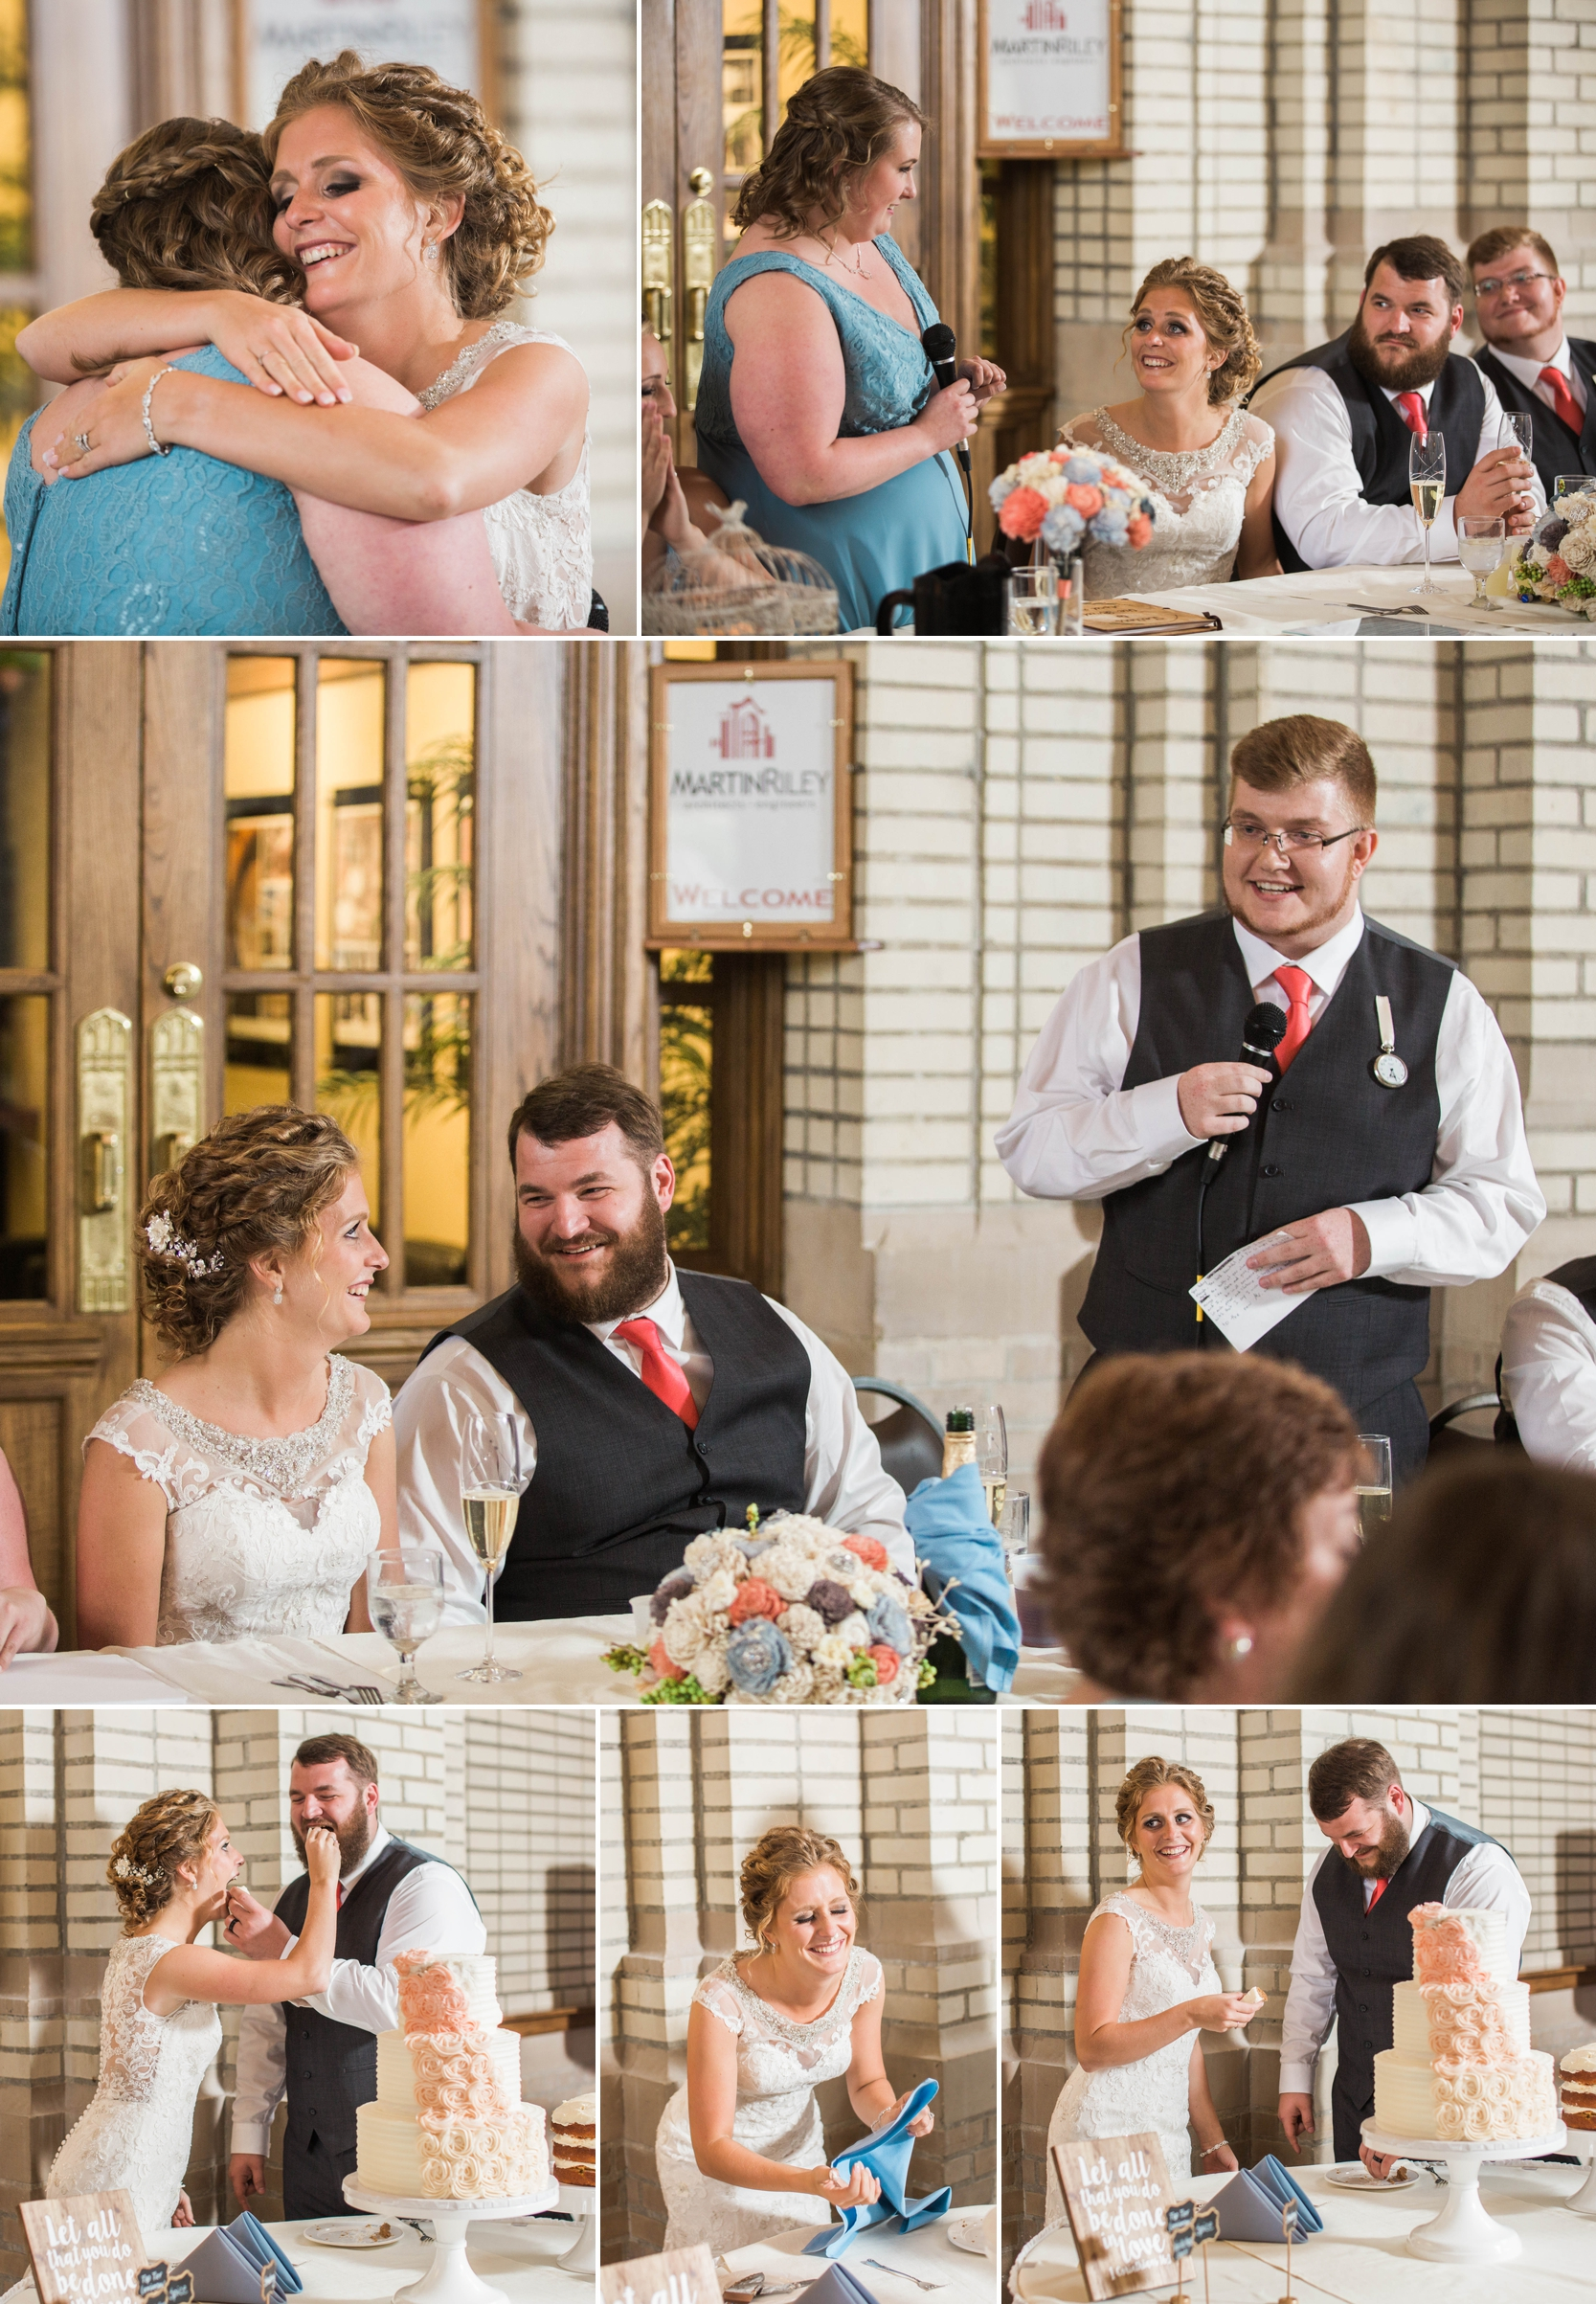 wedding - wedding day - reception - bride - groom